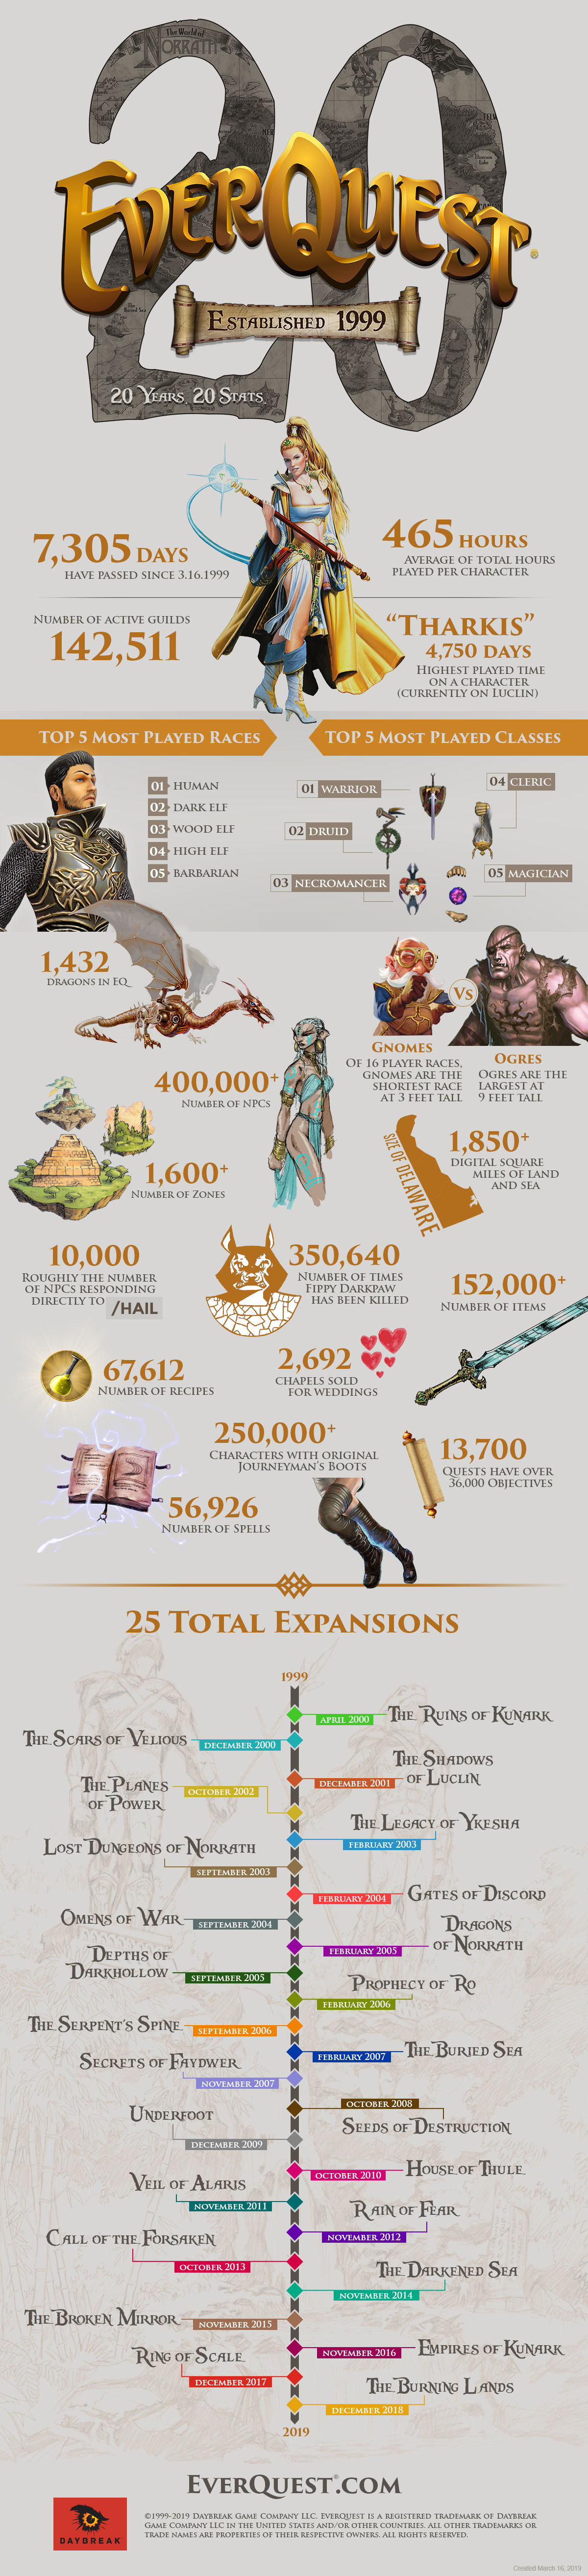 EverQuest turns 20 with new video and infographic as new